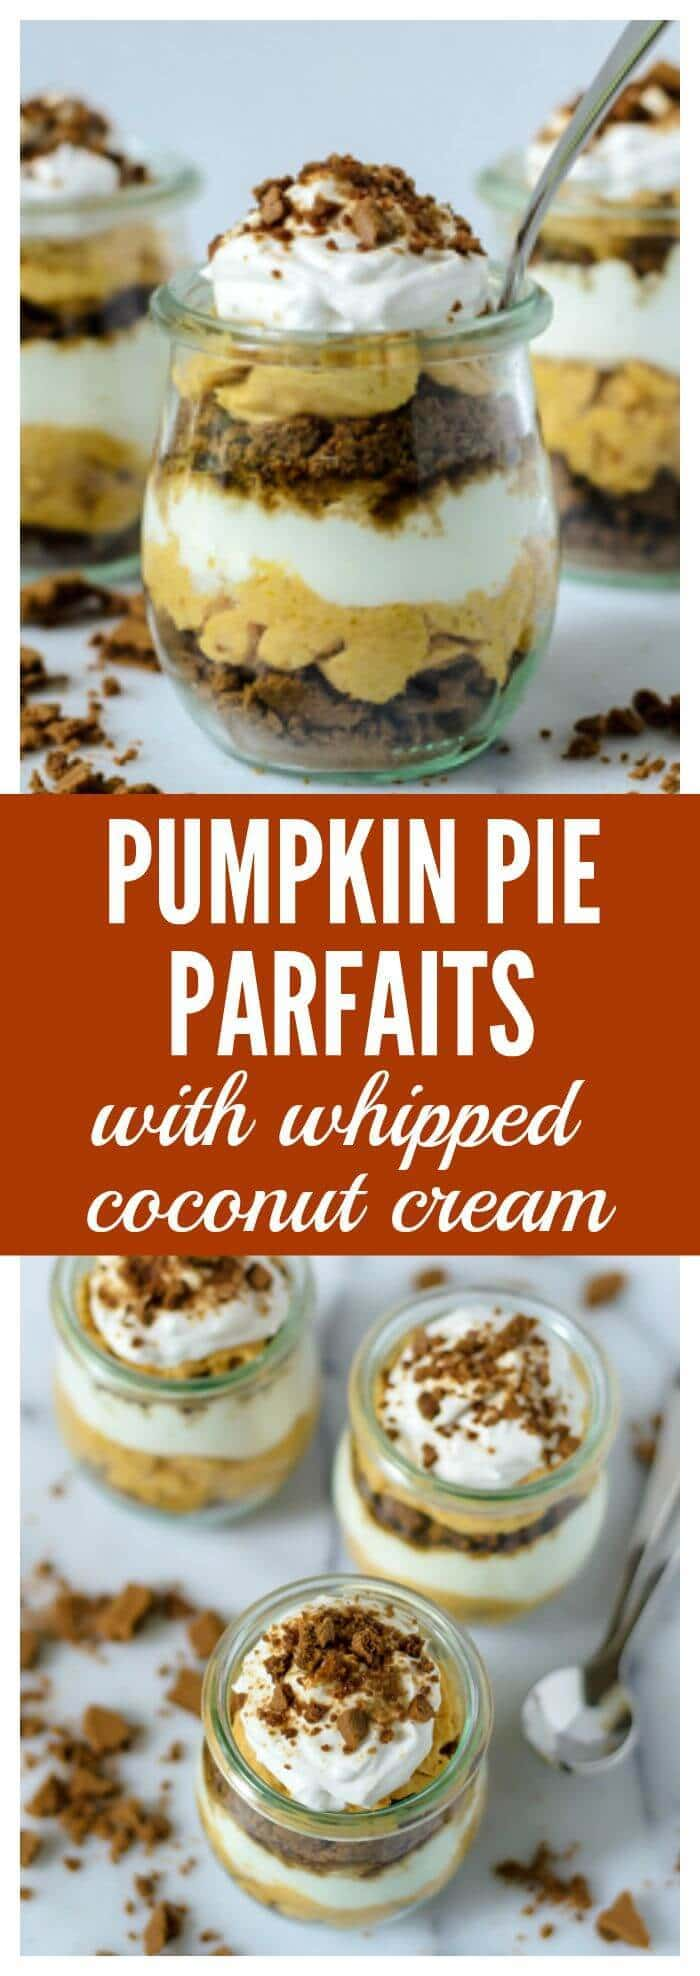 Pumpkin Pie Parfaits with Gingersnaps and Coconut Whipped Cream